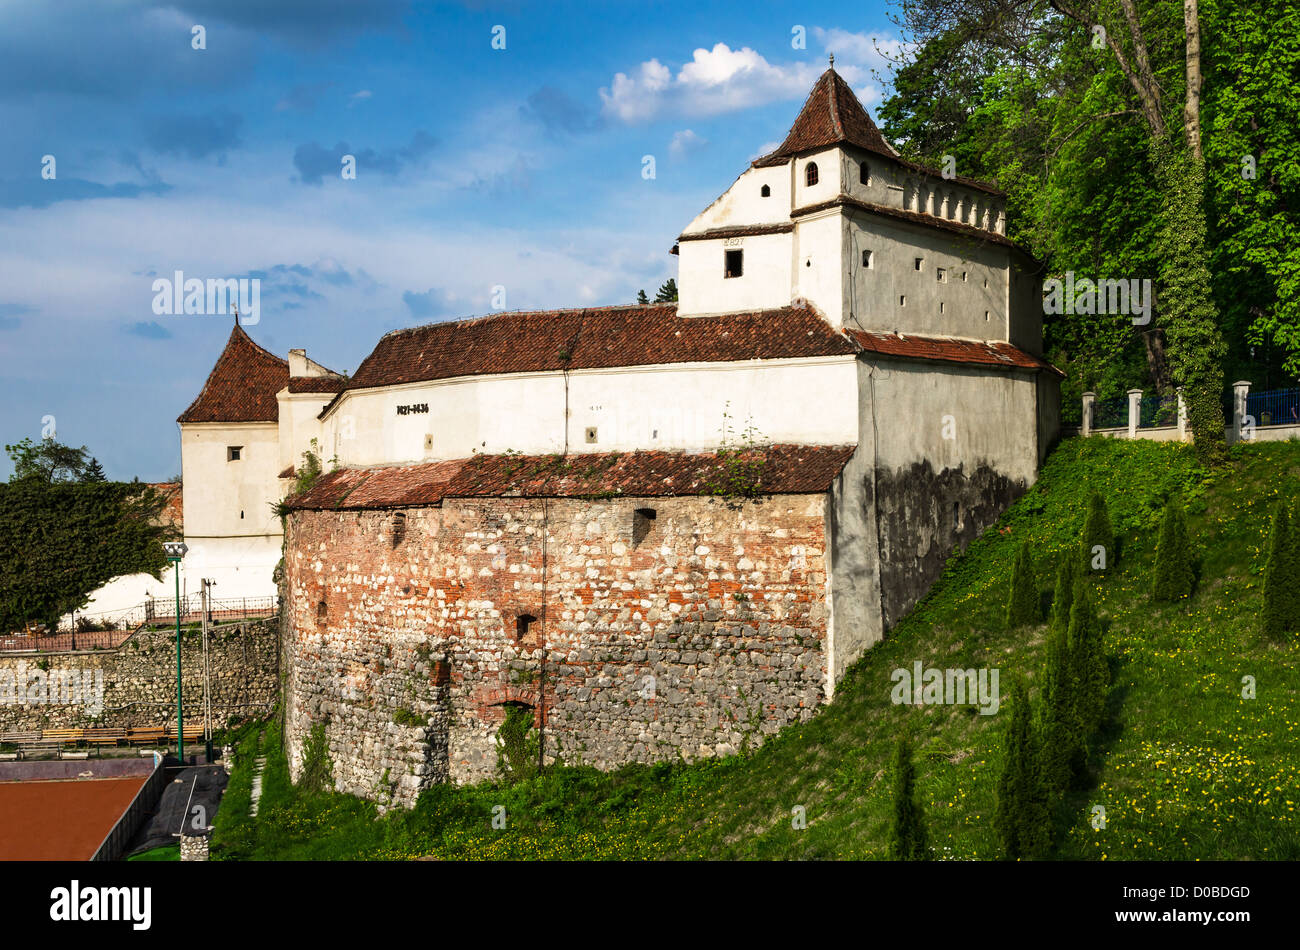 Weavers bastion was built between 1421-1436, for Brasov fortress, in hexagon shape military architecture. - Stock Image